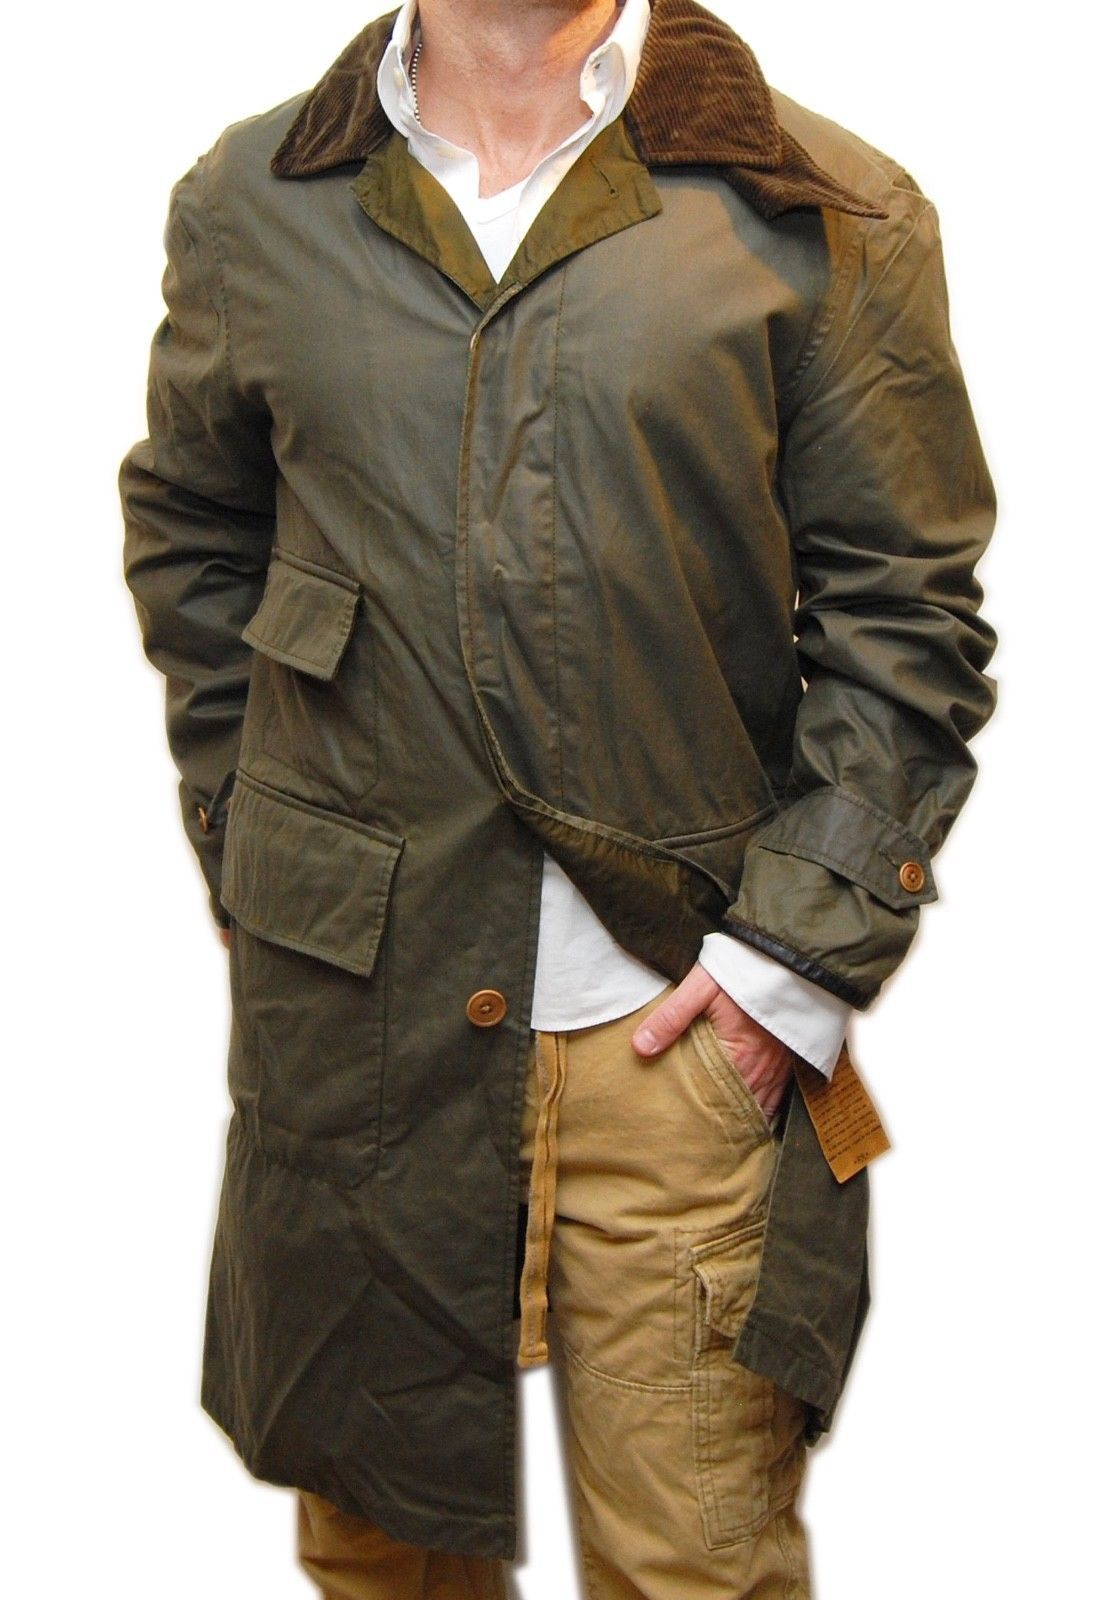 Polo Ralph Lauren Rrl Oiled Waxed Long Trench Coat Jacket Army Olive Green Xl Ebay Link Trench Coat Jackets Men S Coats And Jackets Coat [ 1600 x 1105 Pixel ]